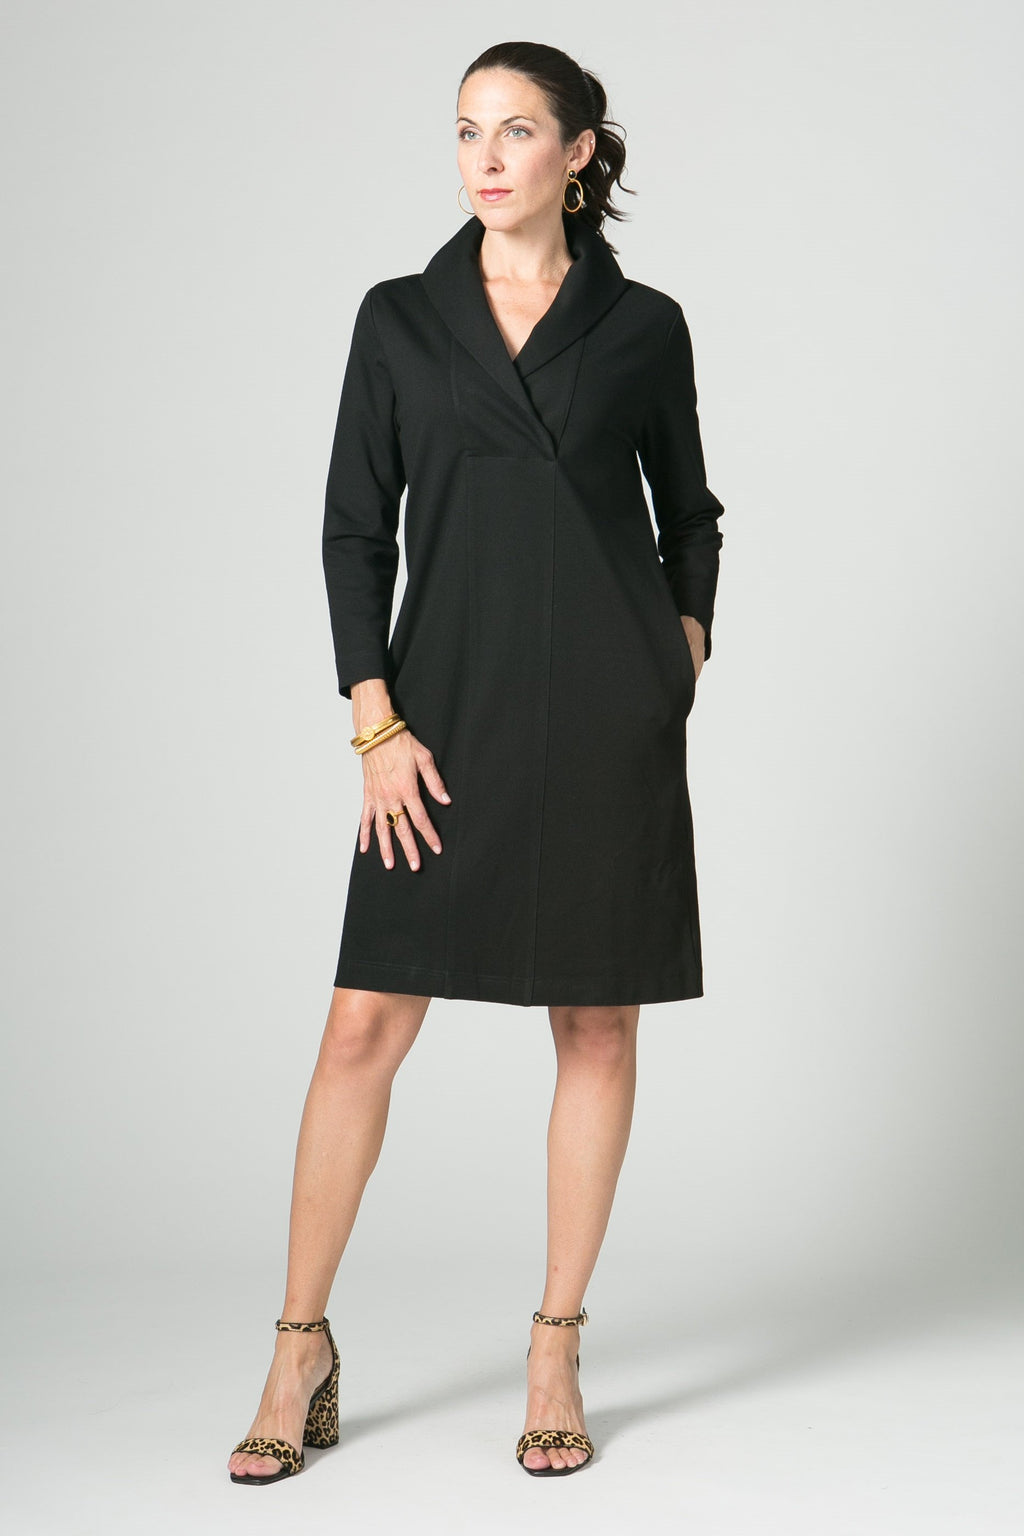 "39"" ¾ Sleeve Wing Collar Dress with Pockets"